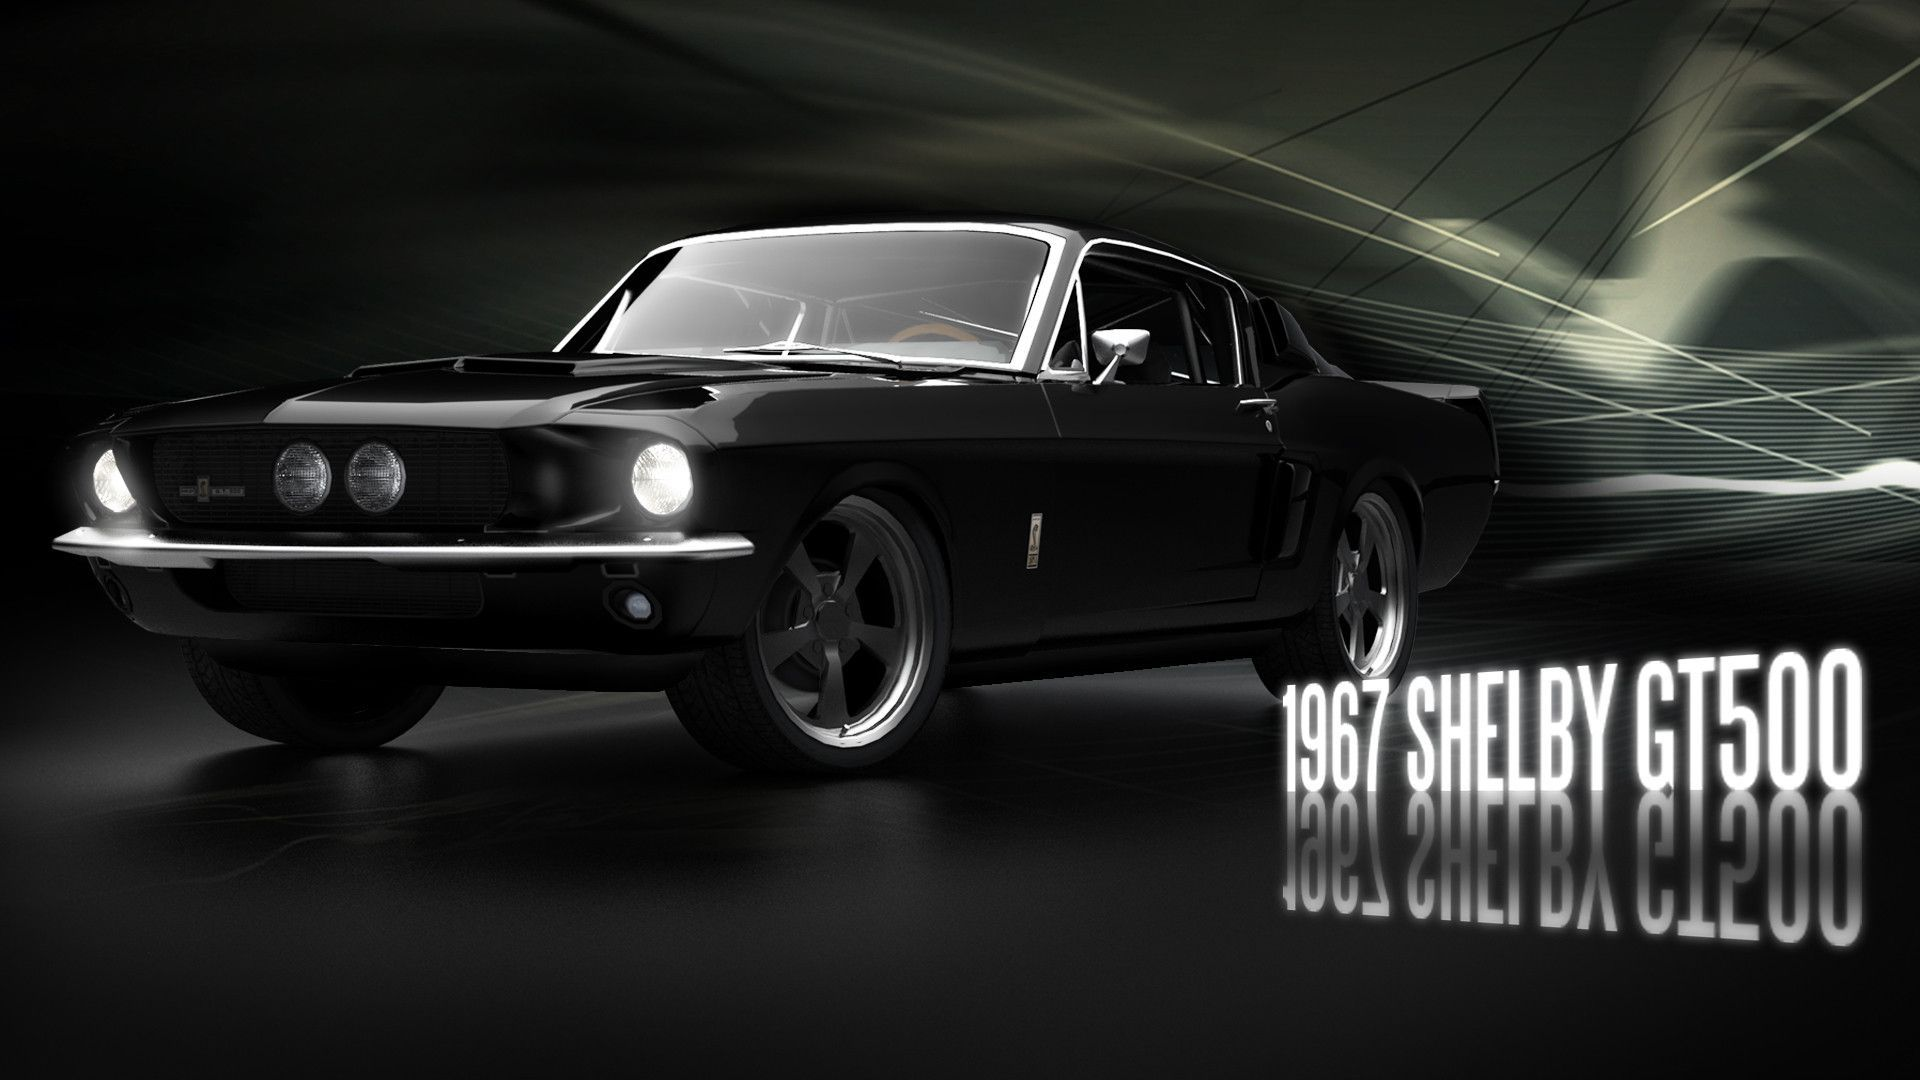 Hd Wallpaper Ford Mustang Boss Fastback Muscle Car Shelby Gt500 1967 Shelby Gt500 Ford Classic Cars